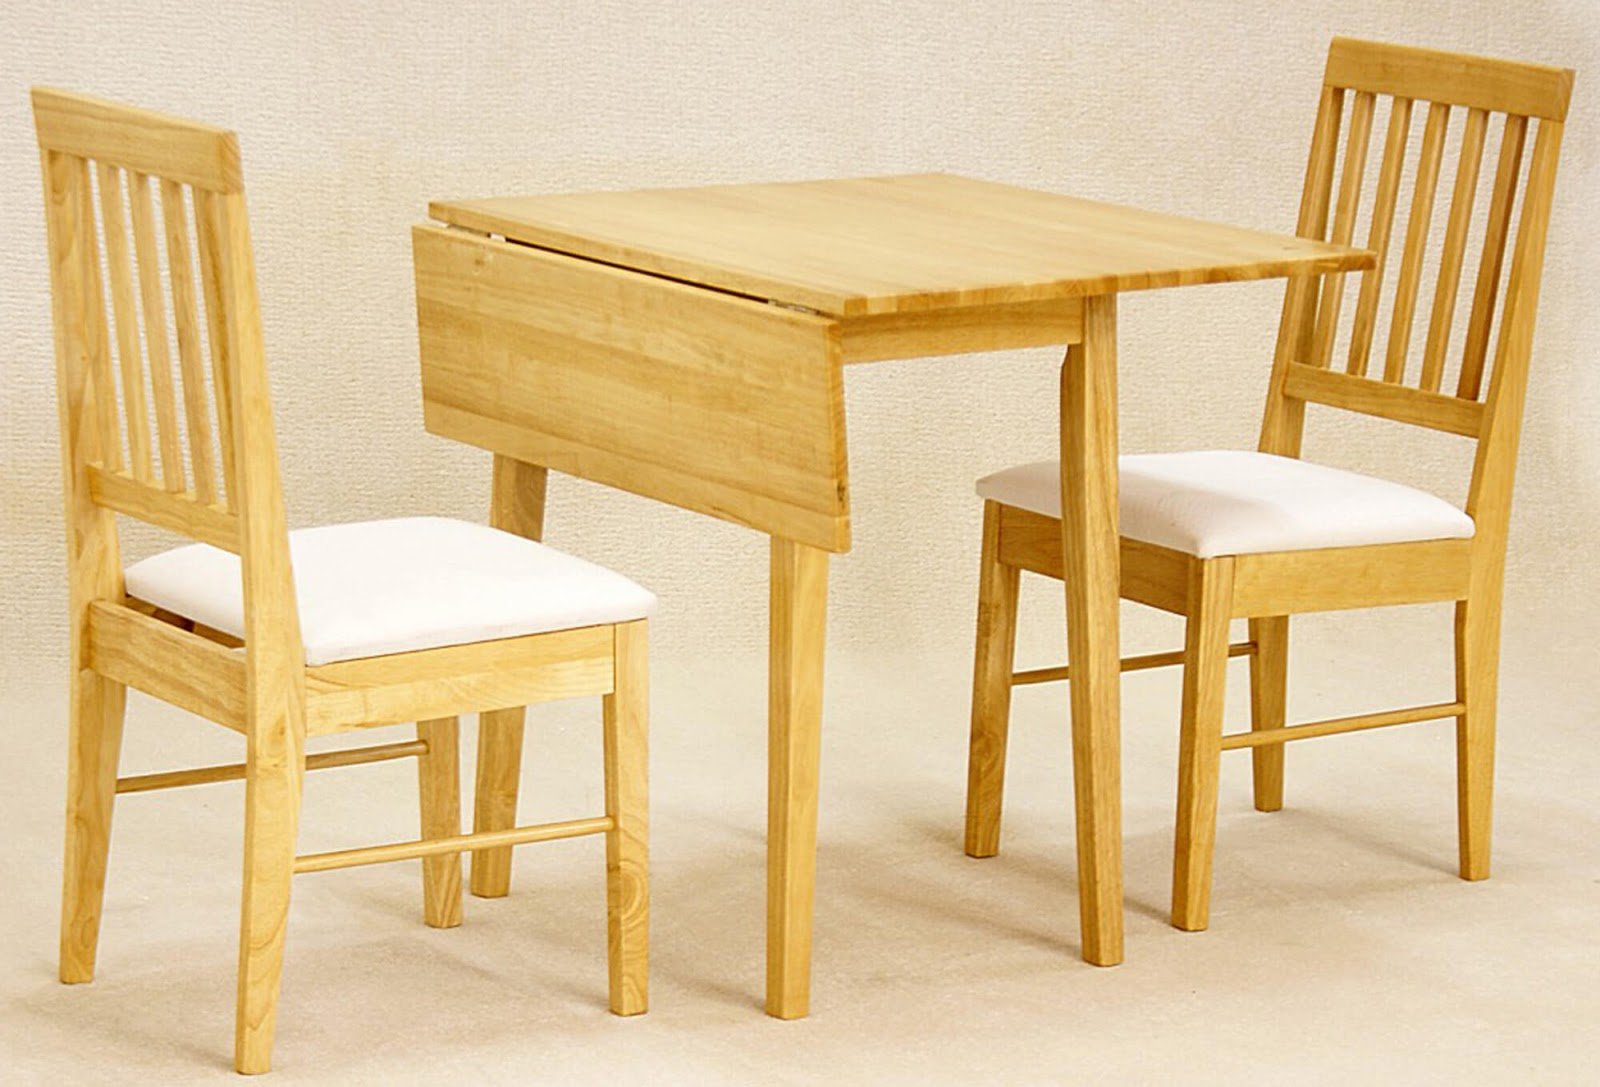 Unfinished Dining Chairs 8 43 Unfinished Dining Chairs Ideas